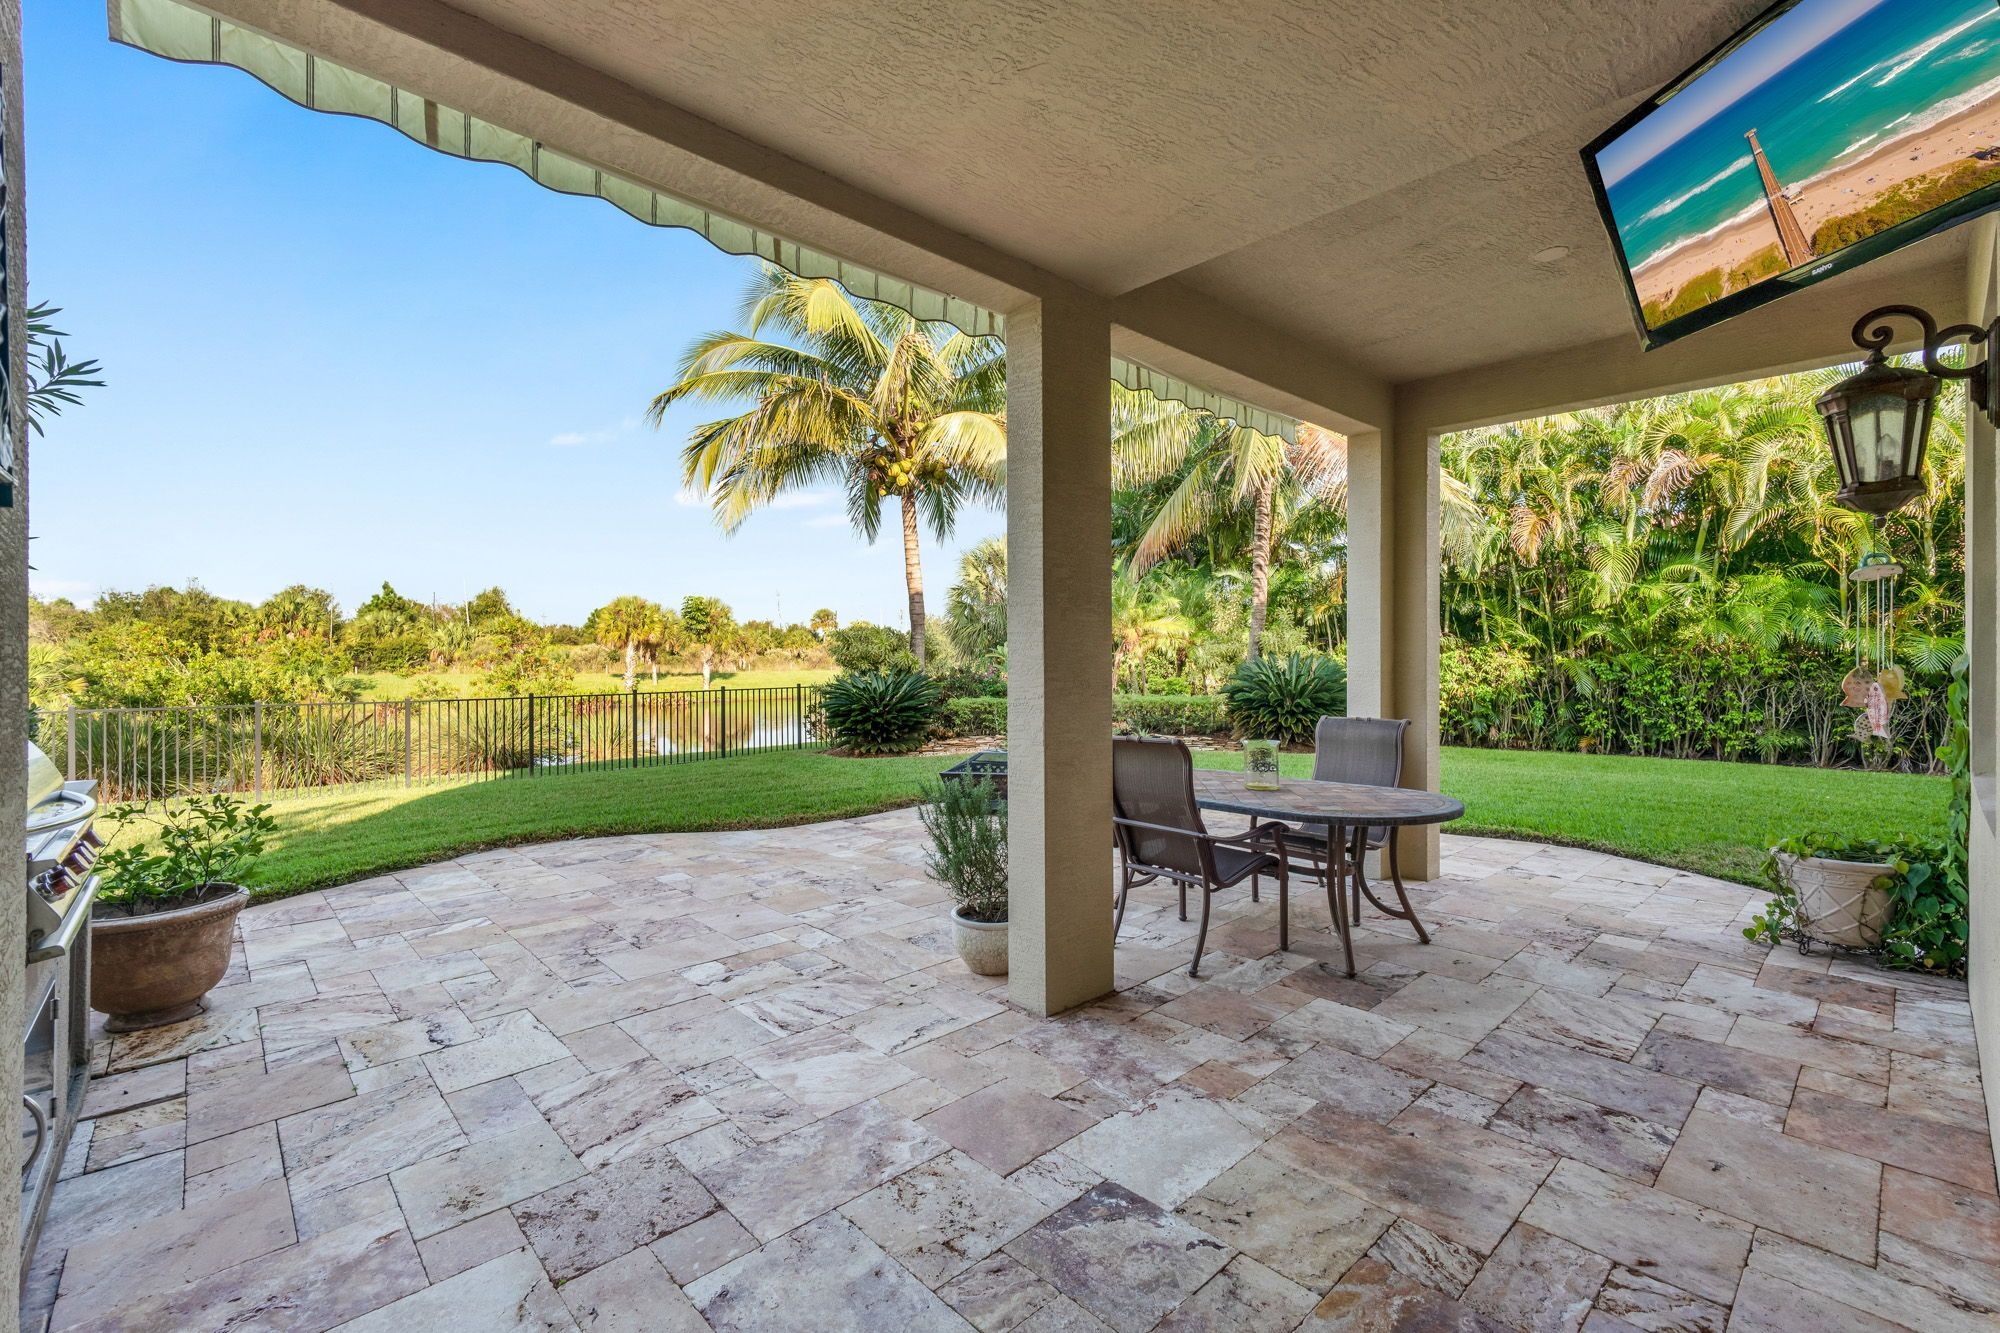 Balcony Decoration Palm beach 9149 Garden Terrace protection perspective-pressure